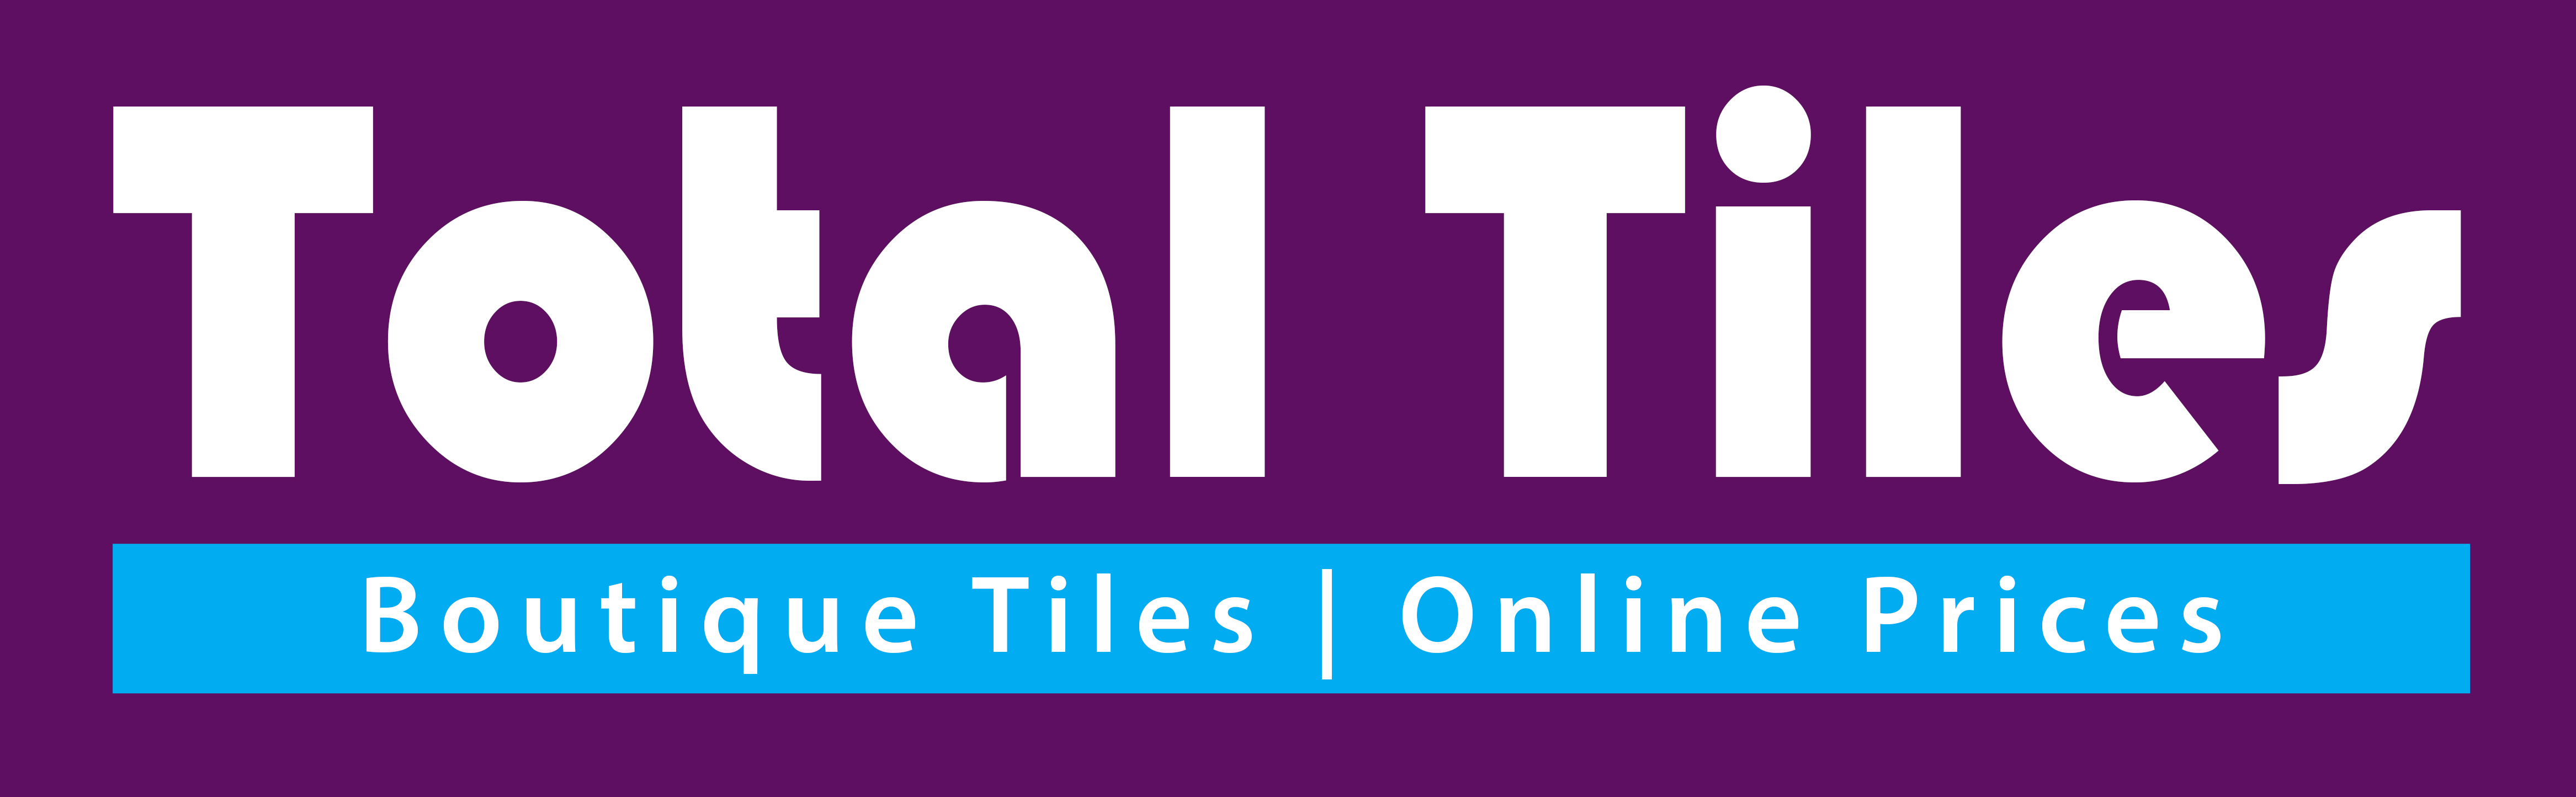 Read Total Tiles Reviews